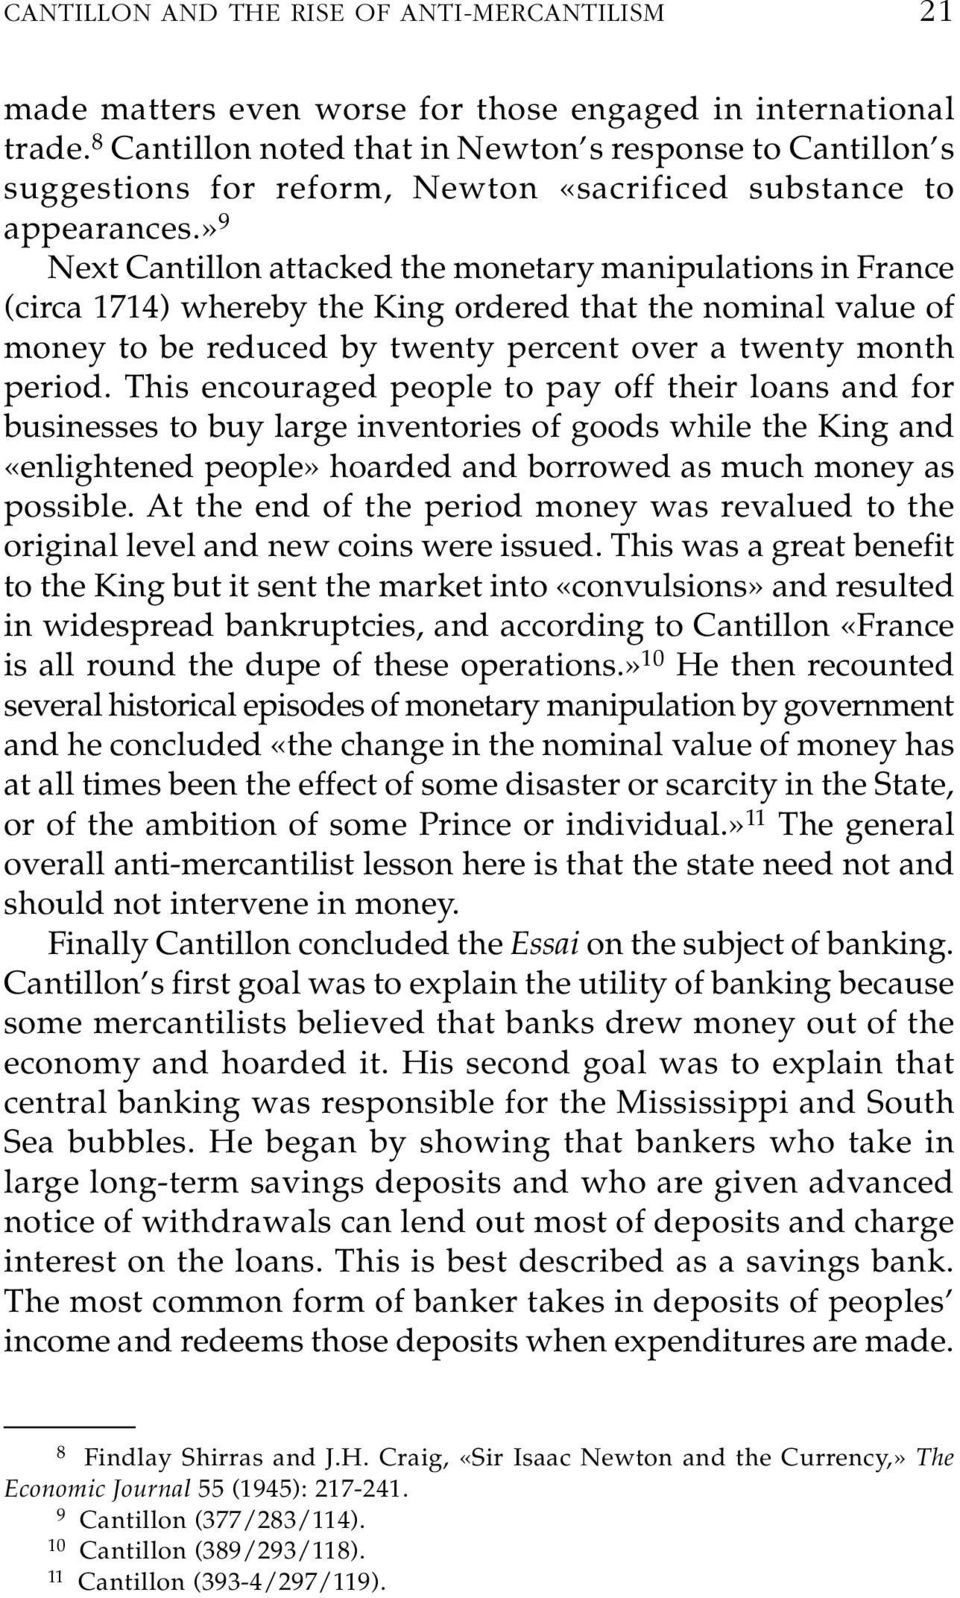 » 9 Next Cantillon attacked the monetary manipulations in France (circa 1714) whereby the King ordered that the nominal value of money to be reduced by twenty percent over a twenty month period.